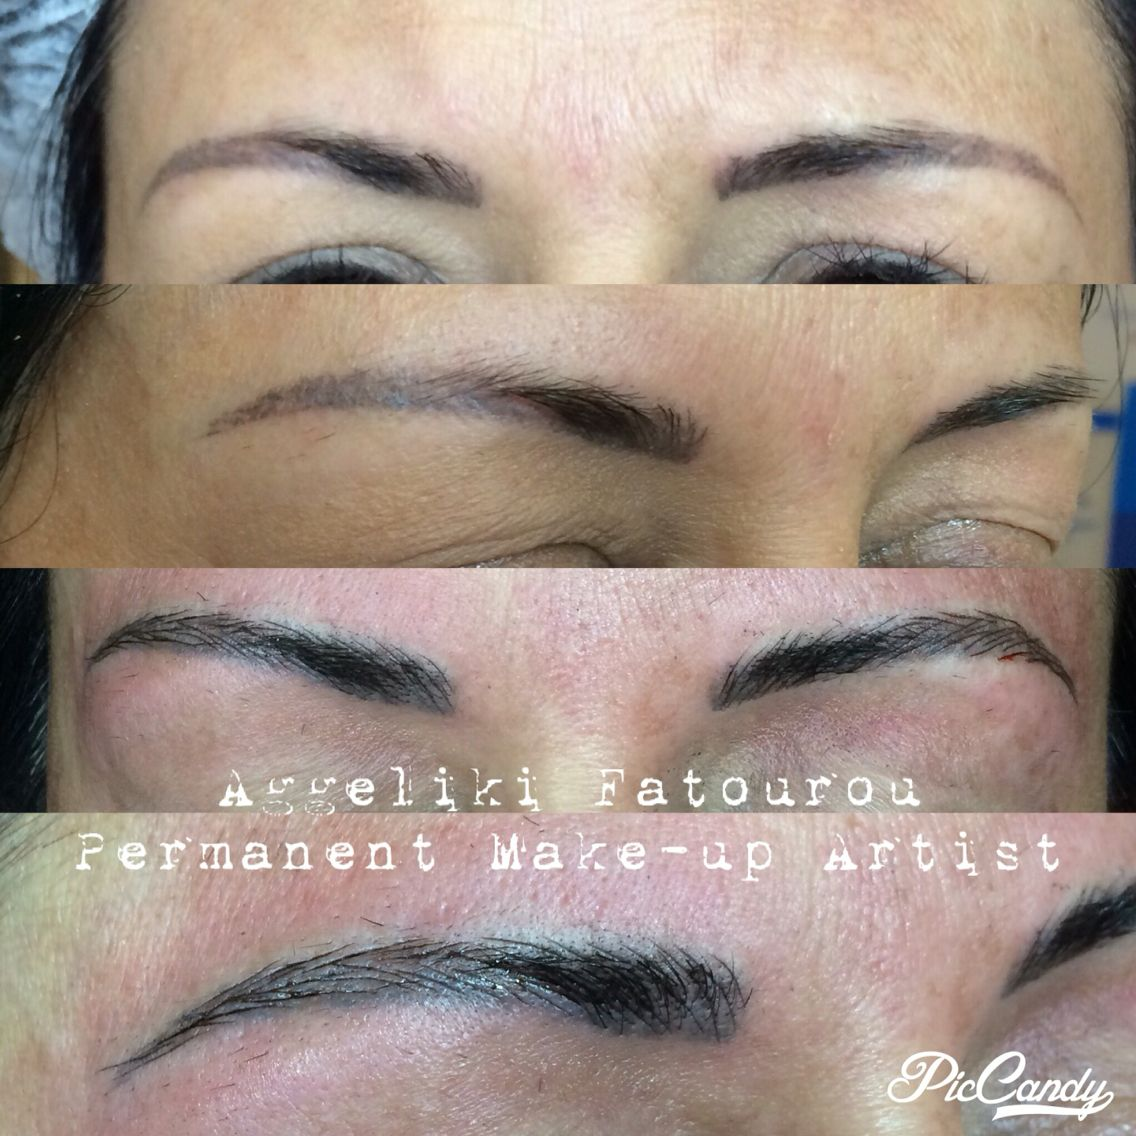 An old eyebrows tattoo correction. I fade it out with a